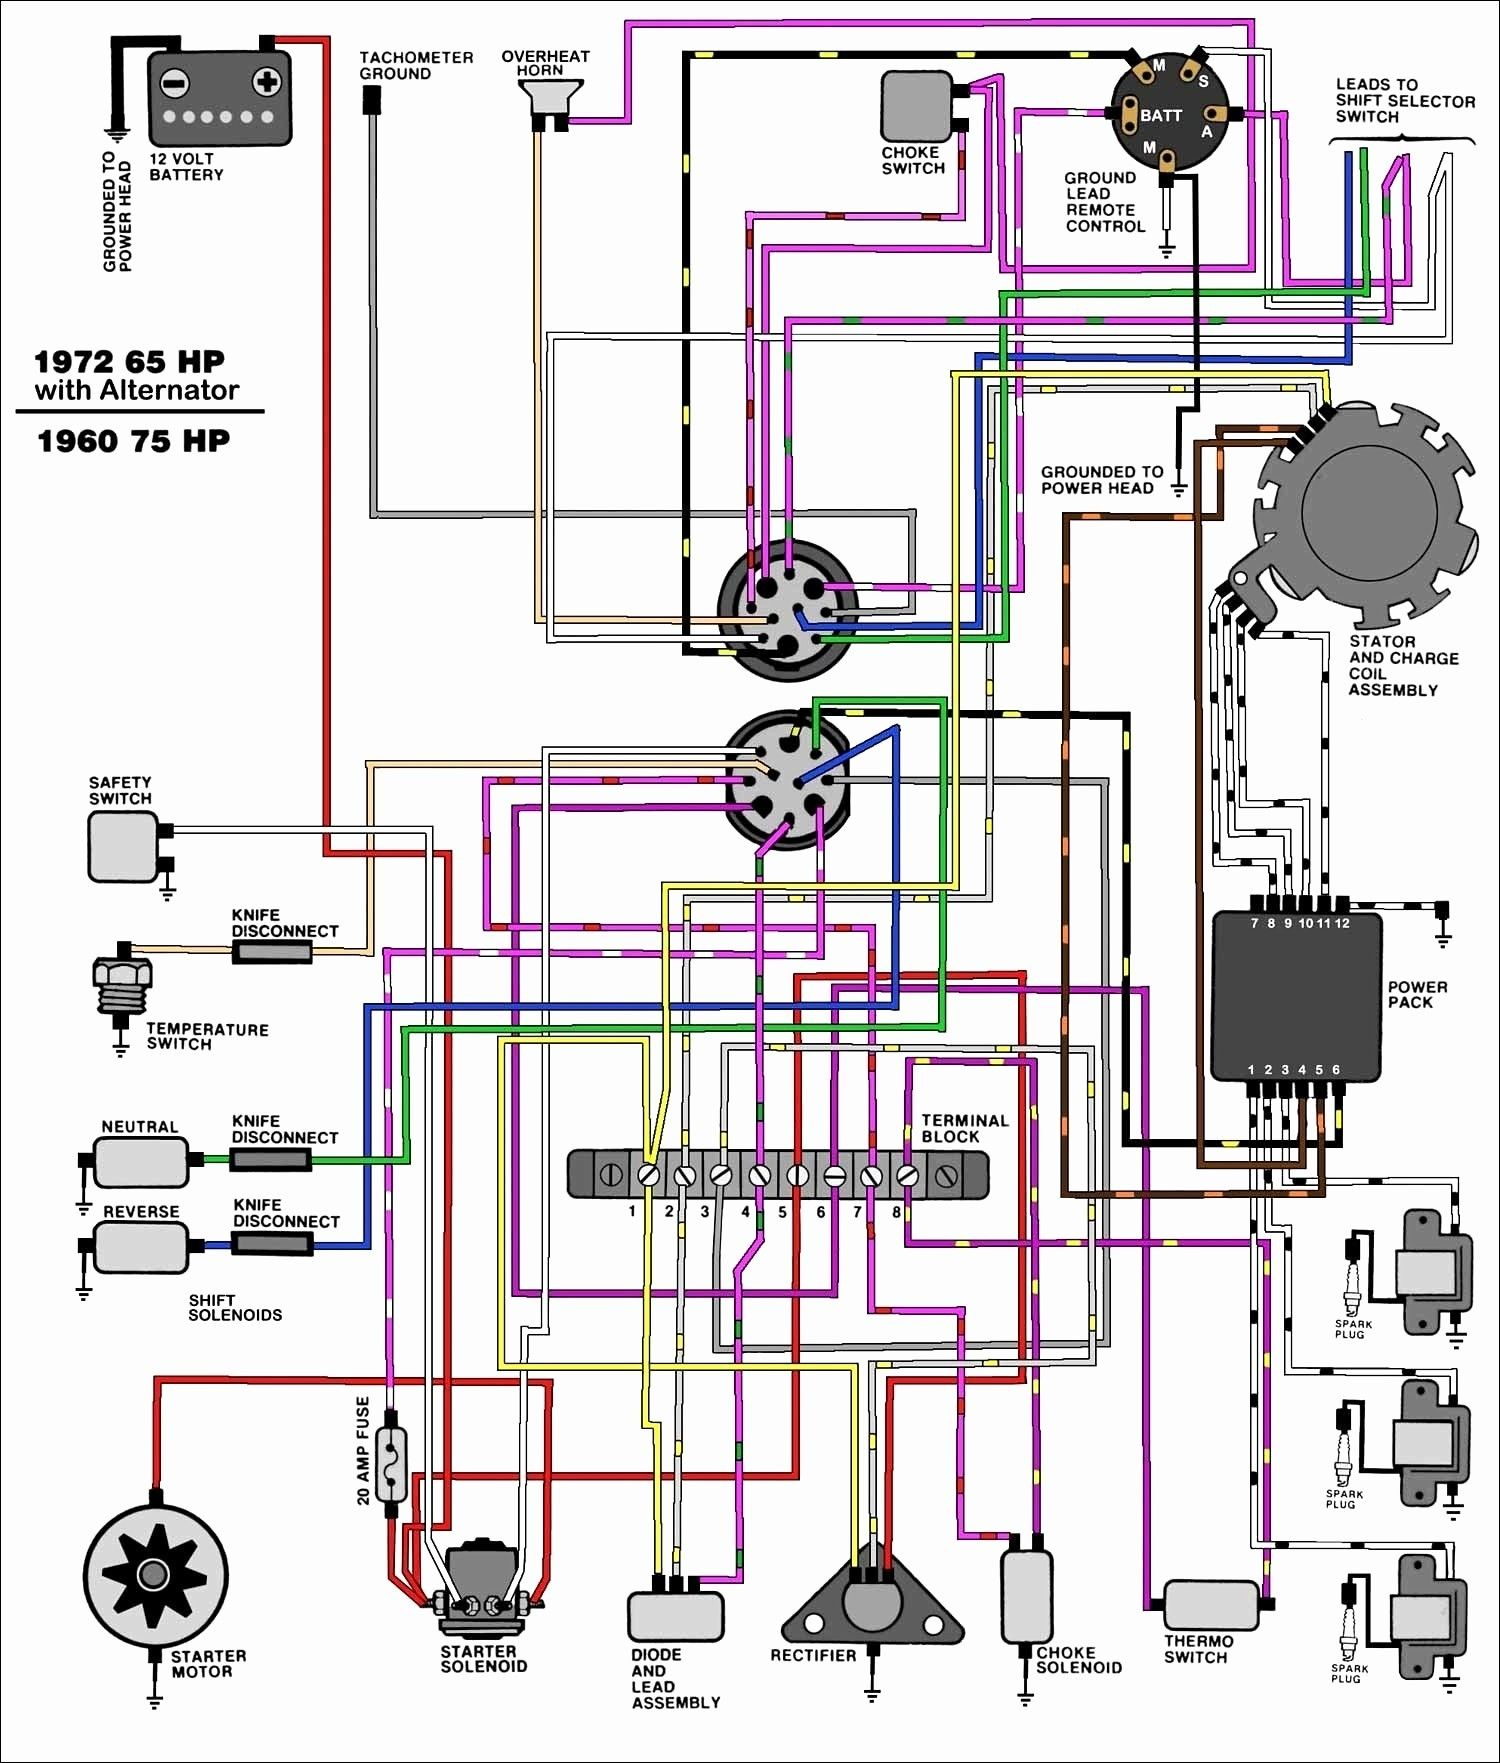 Indak Switch Wiring Diagram Unique In 2020 Electrical Wiring Diagram Outboard Diagram